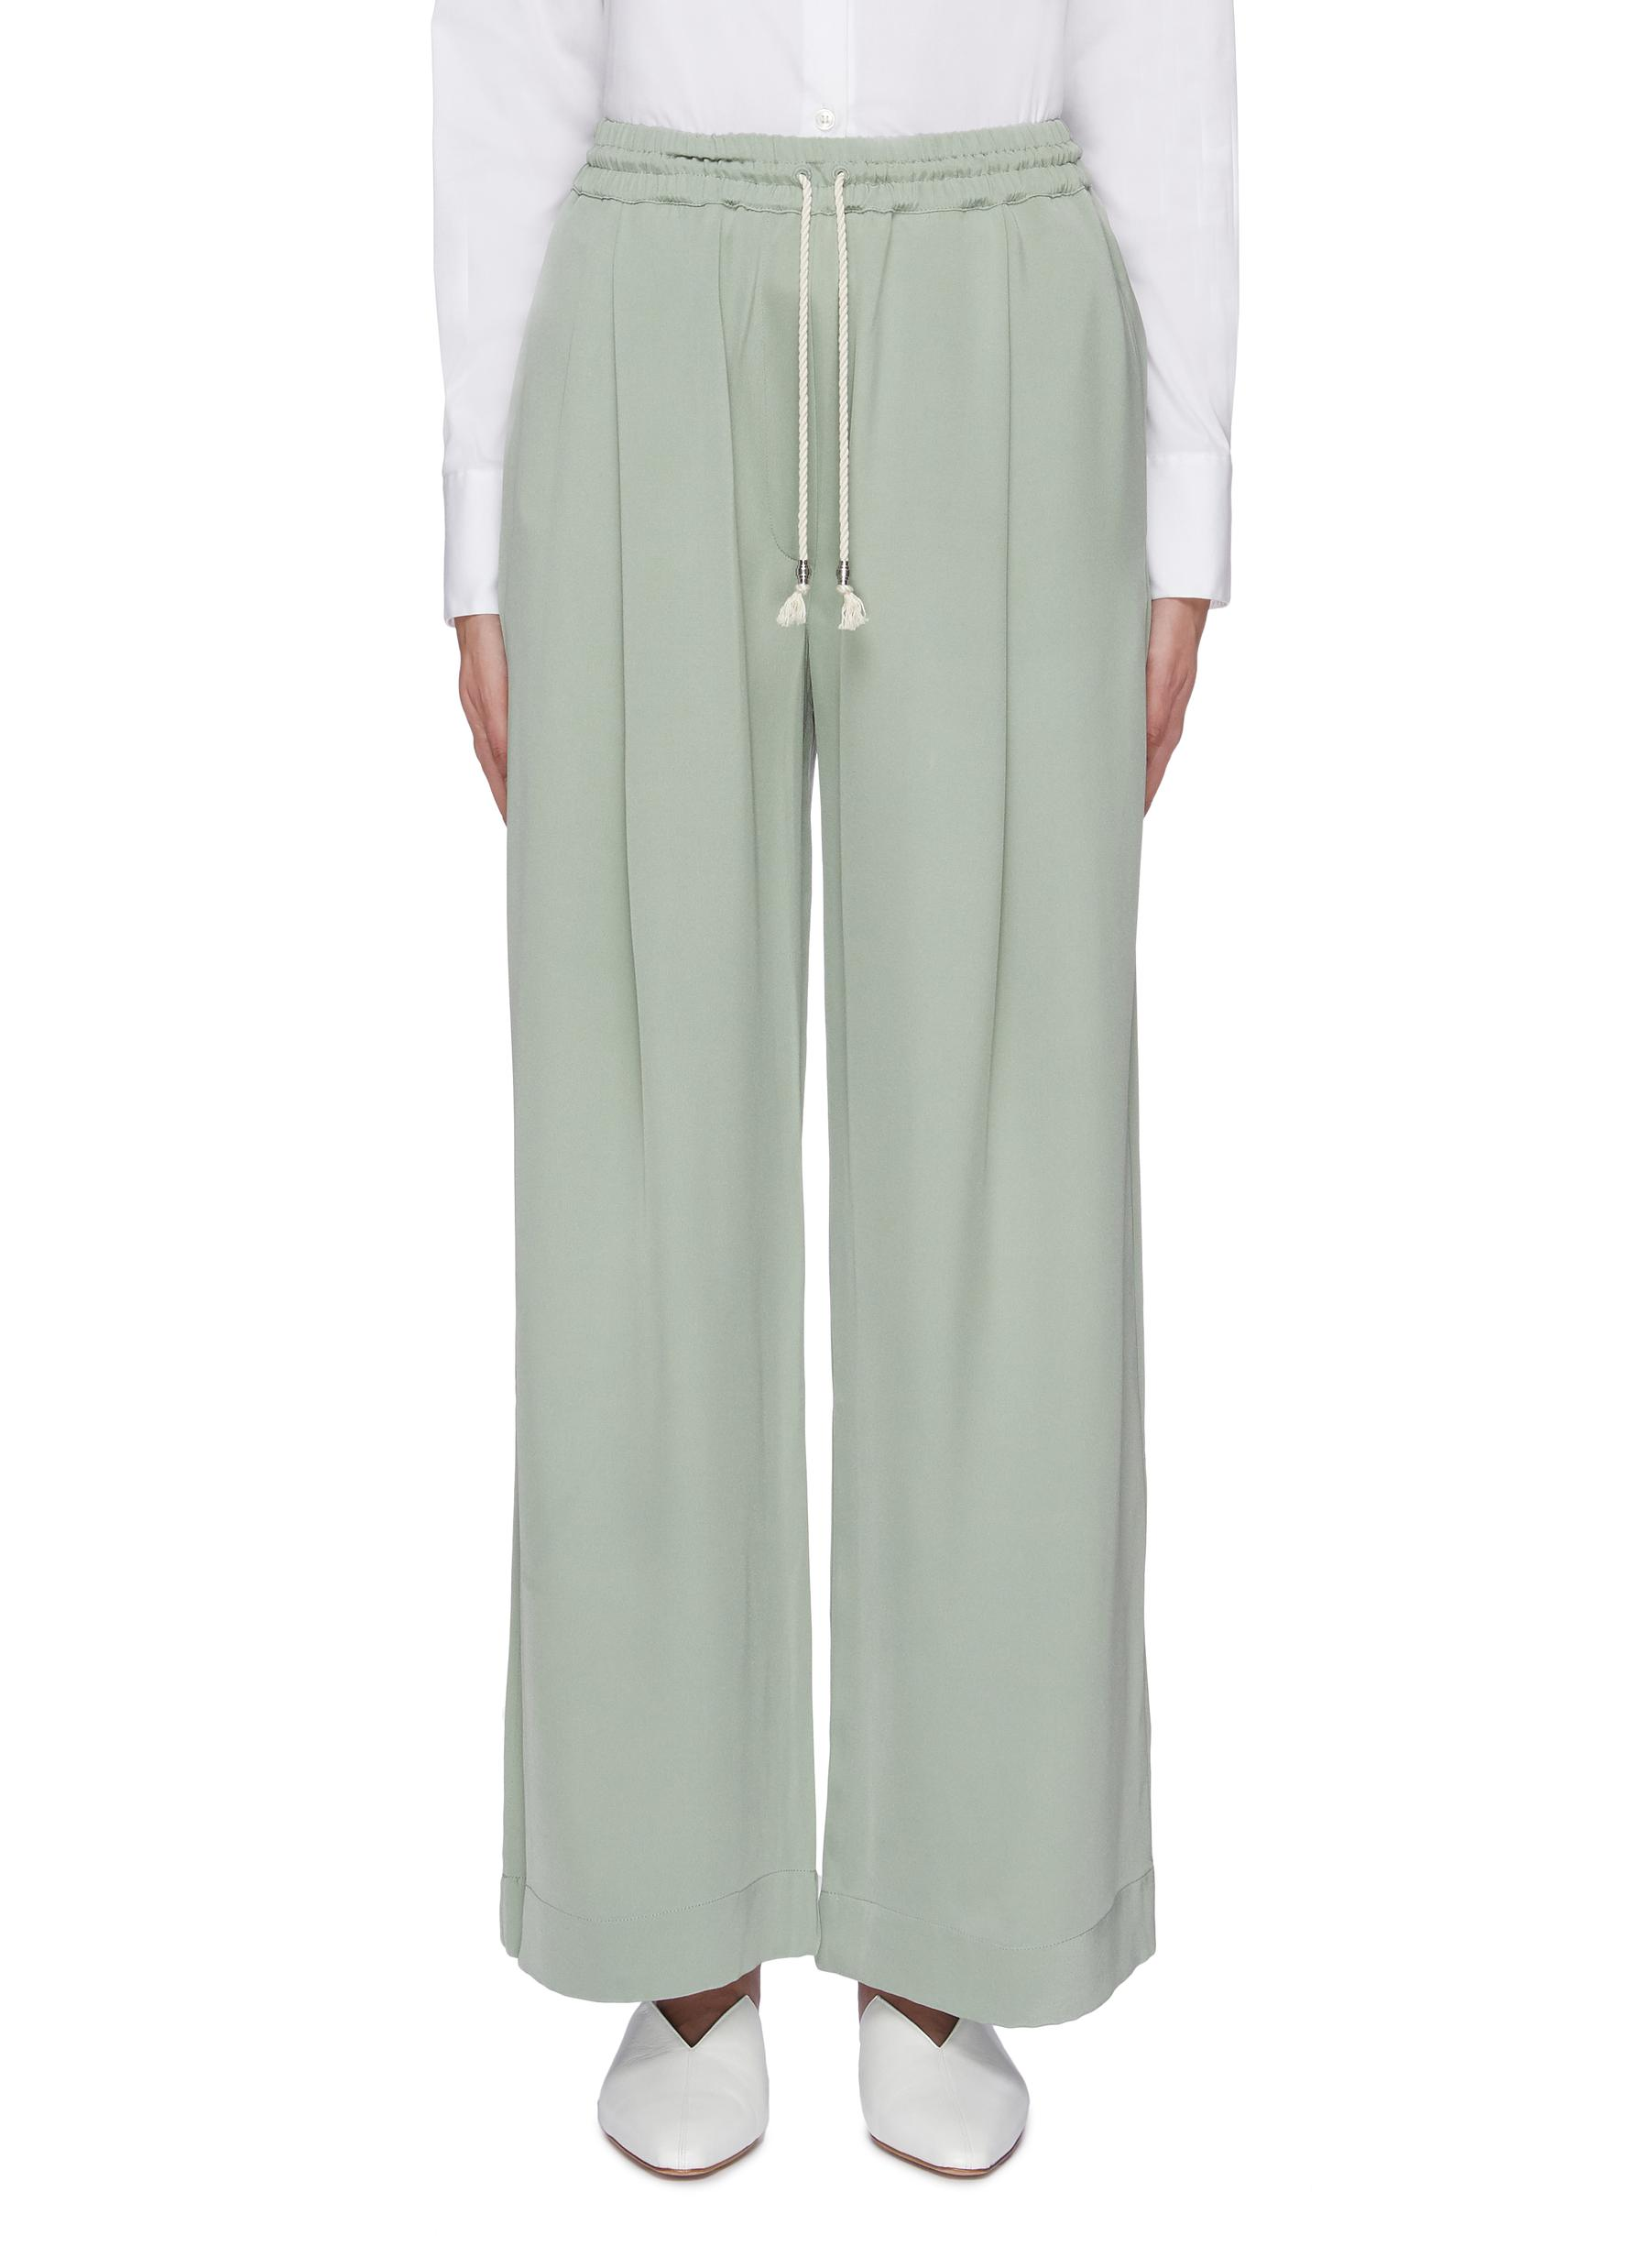 Silk drawstring wide leg pants by Equil